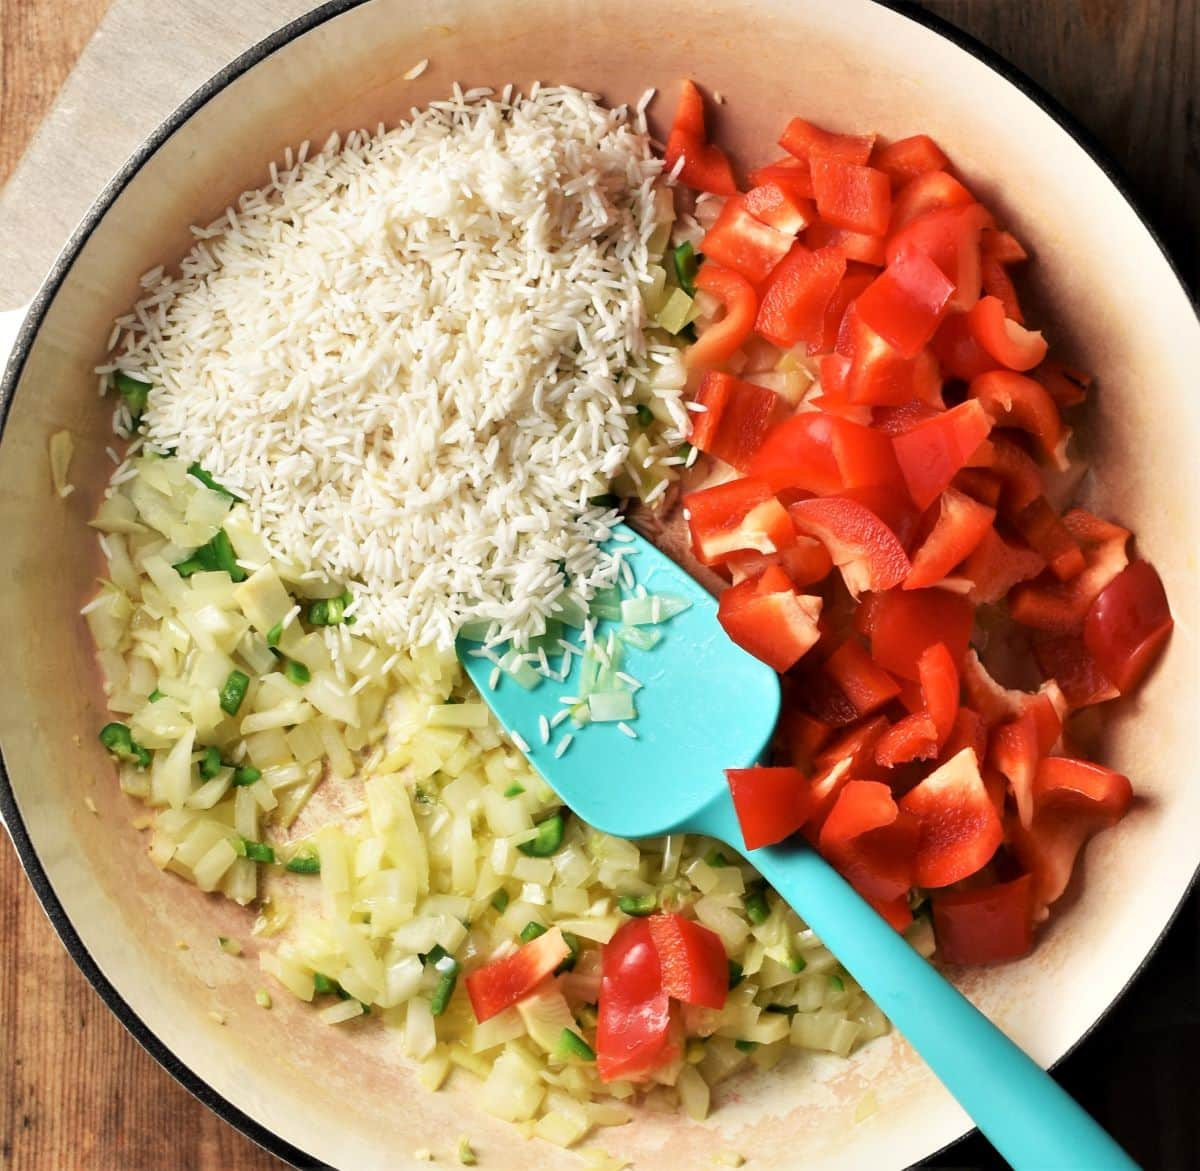 Rice, onion and red pepper in large shallow pan with blue spoon.